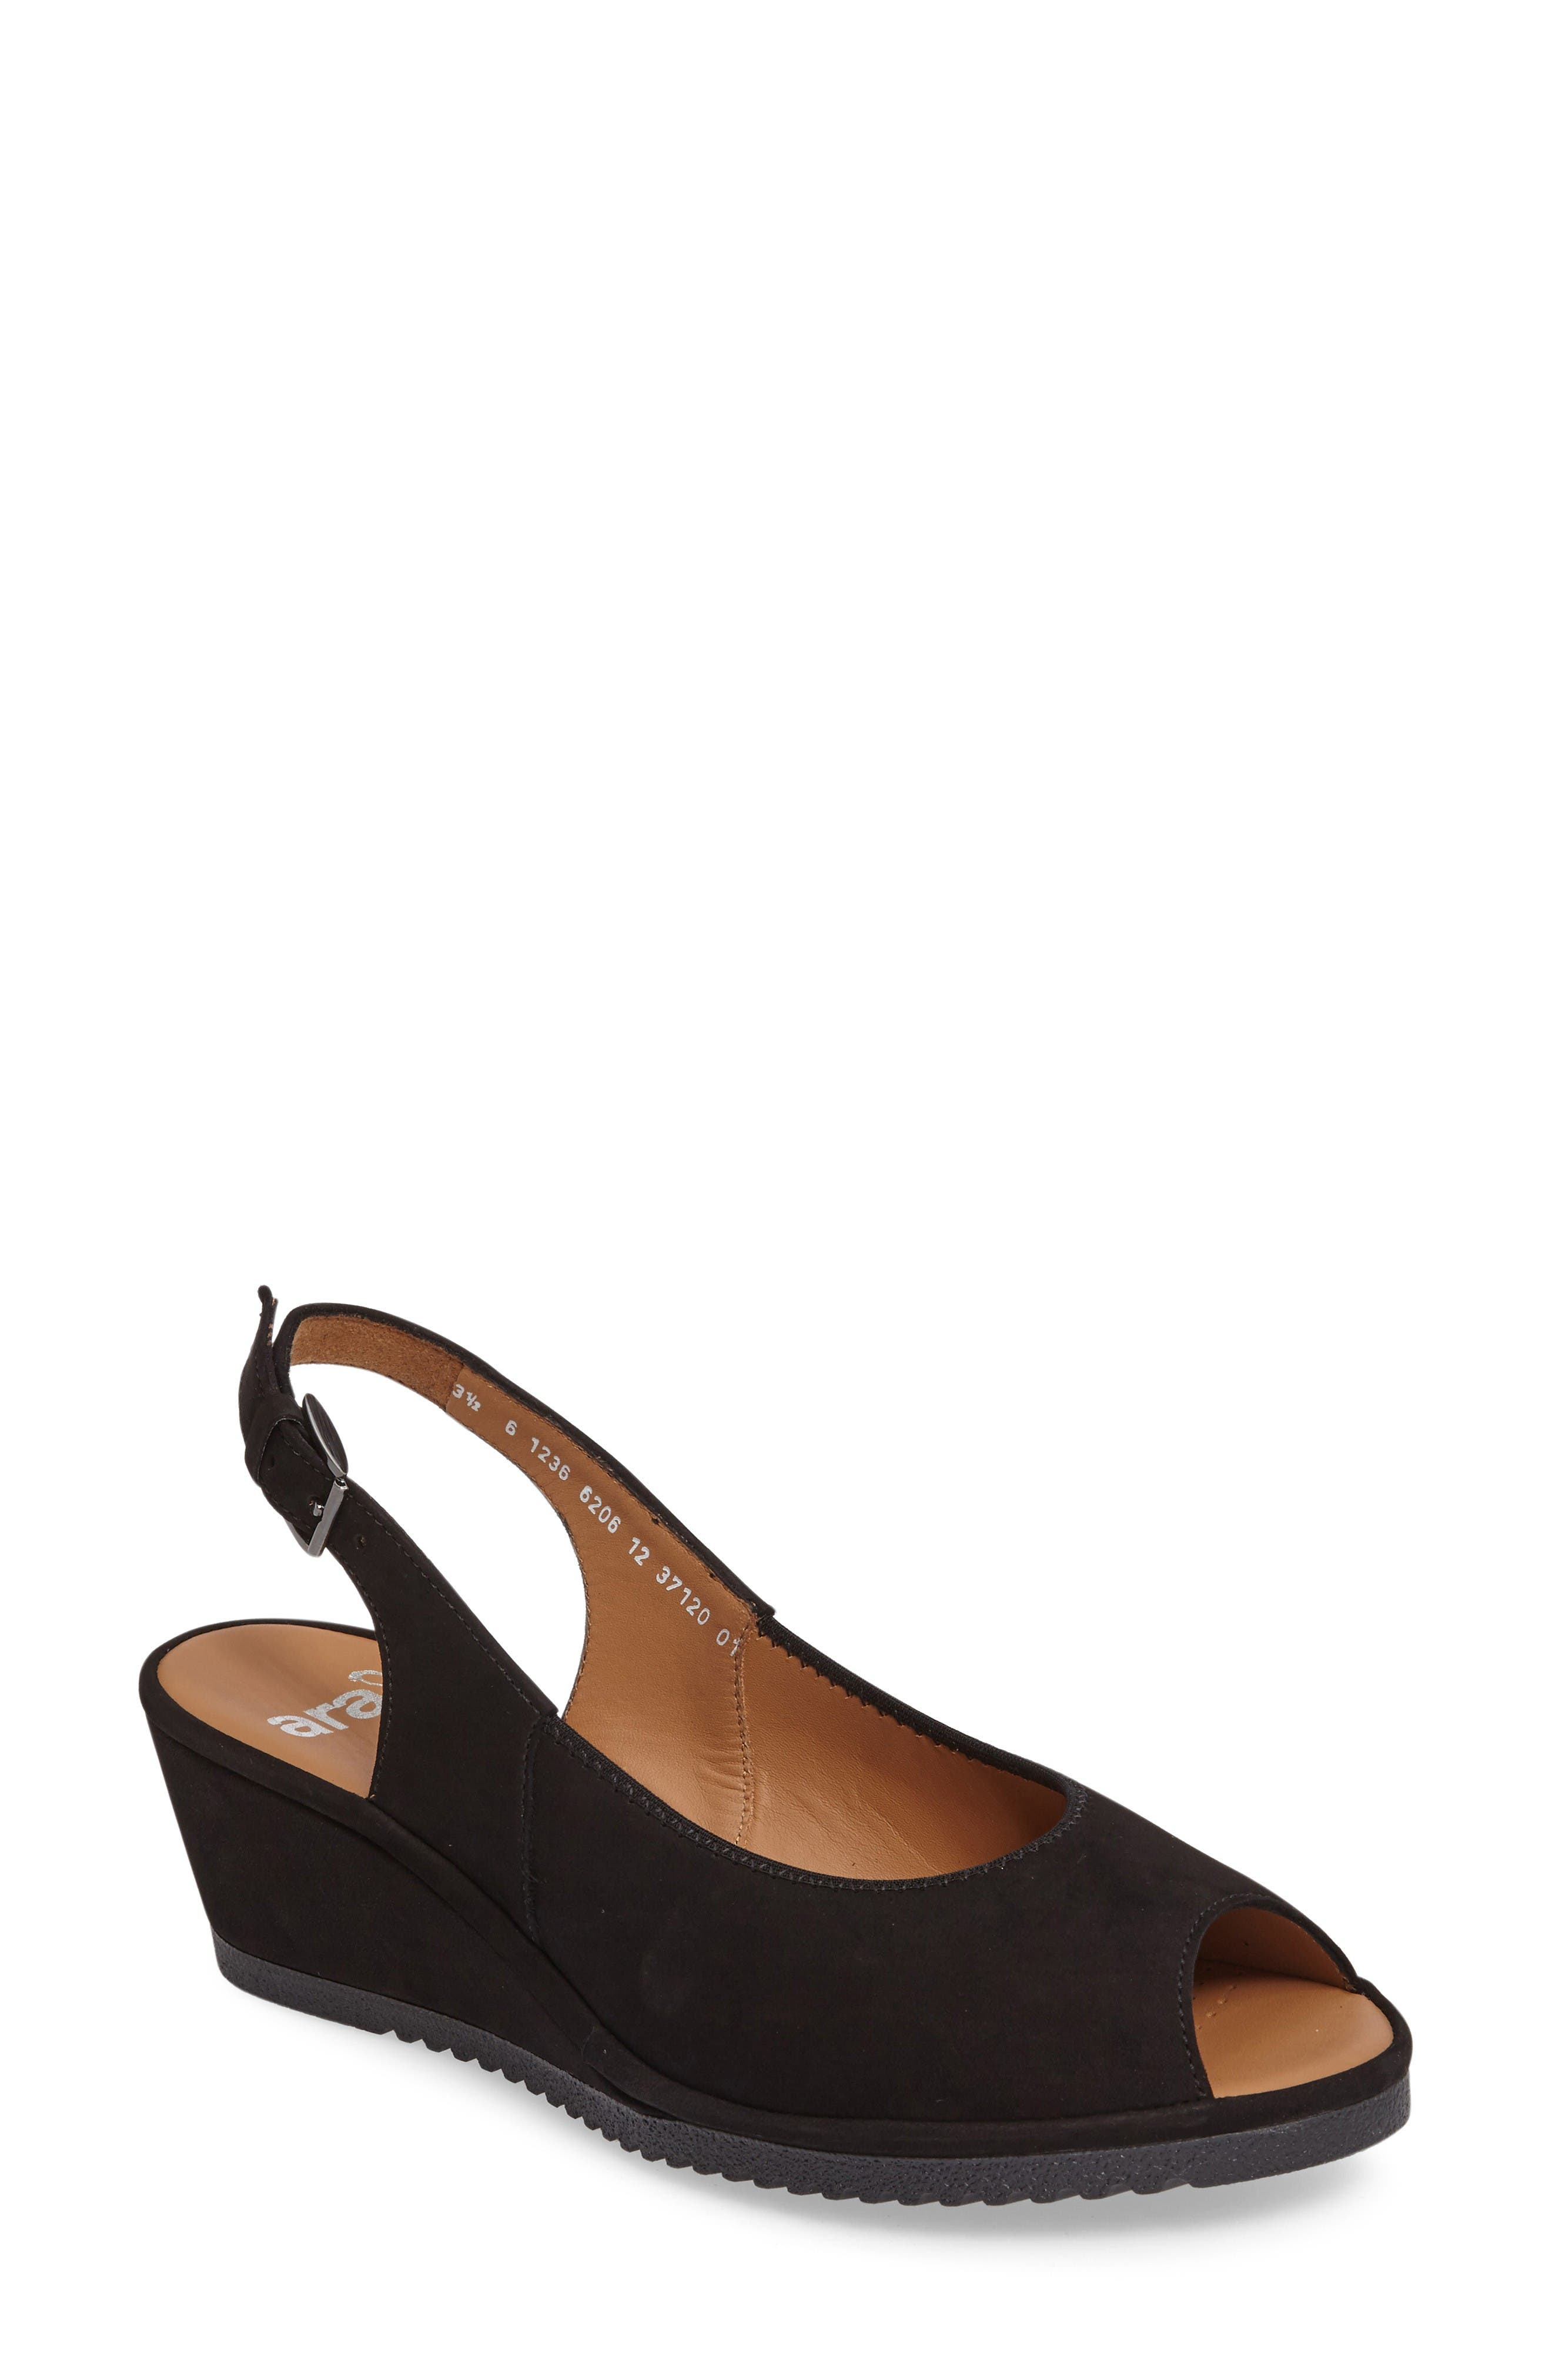 Colleen Sandal,                         Main,                         color, Black